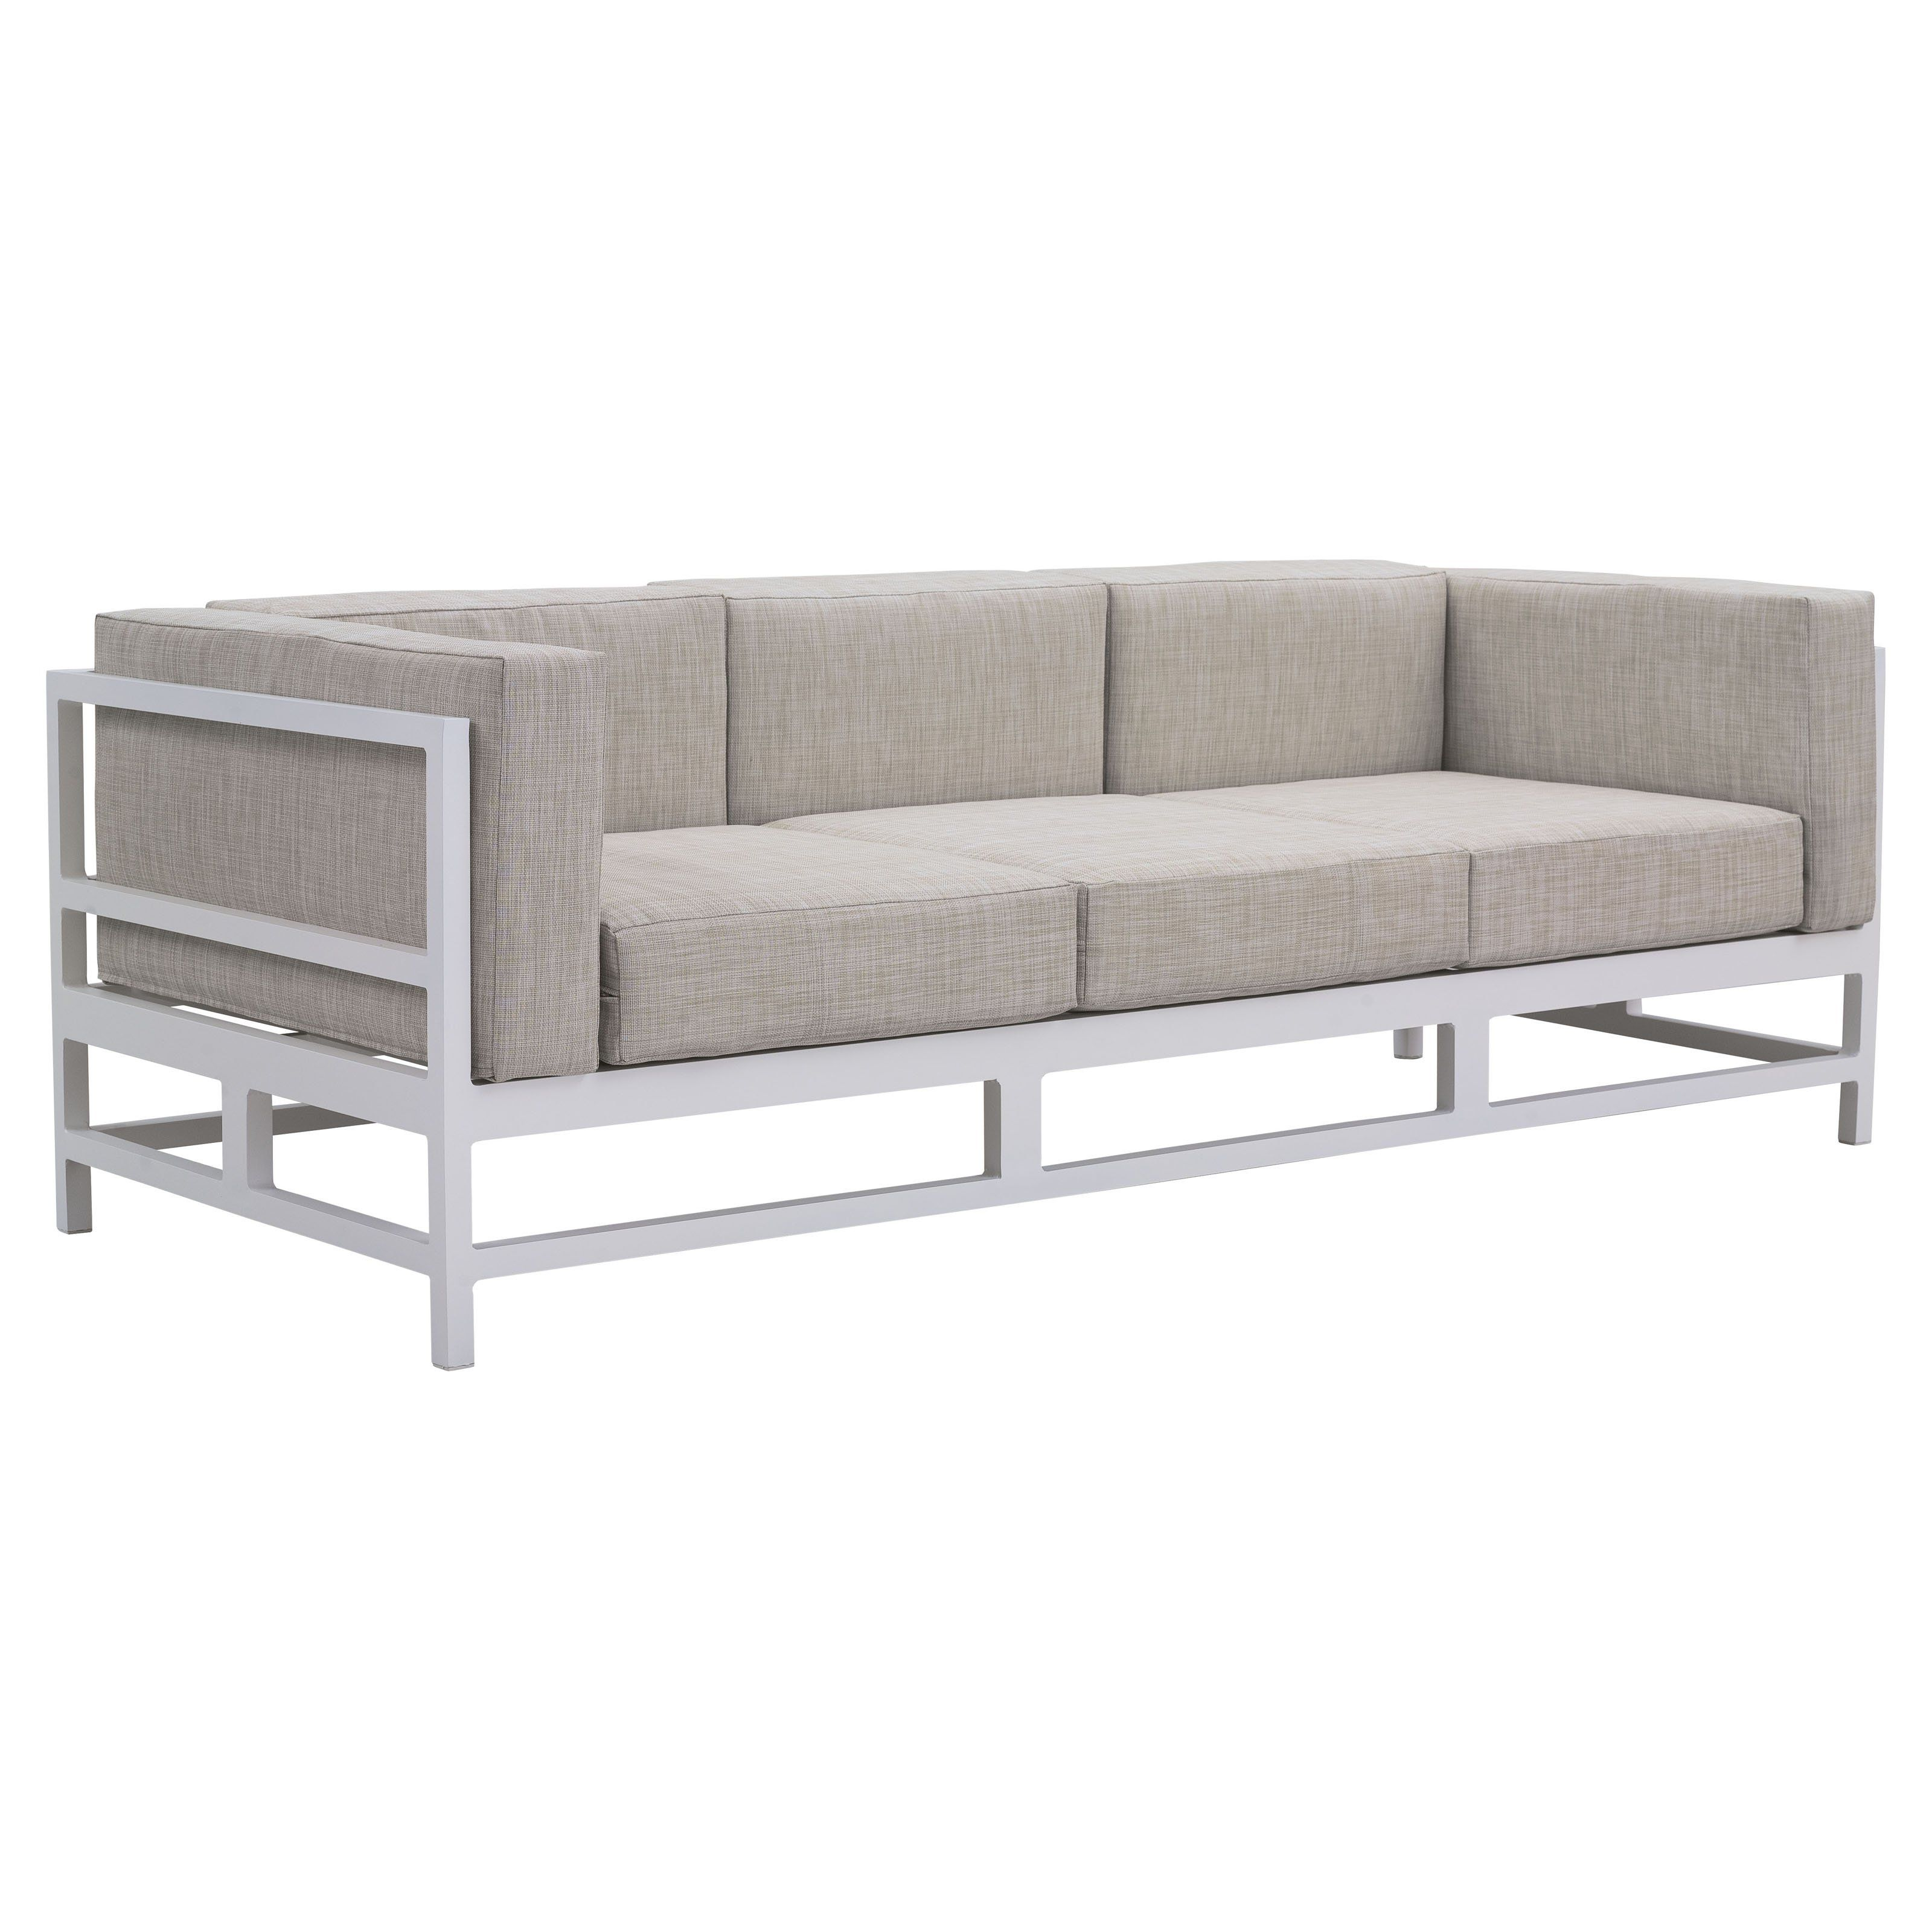 Have to have it Zuo Vive Sword Fish Aluminum Sofa $1098